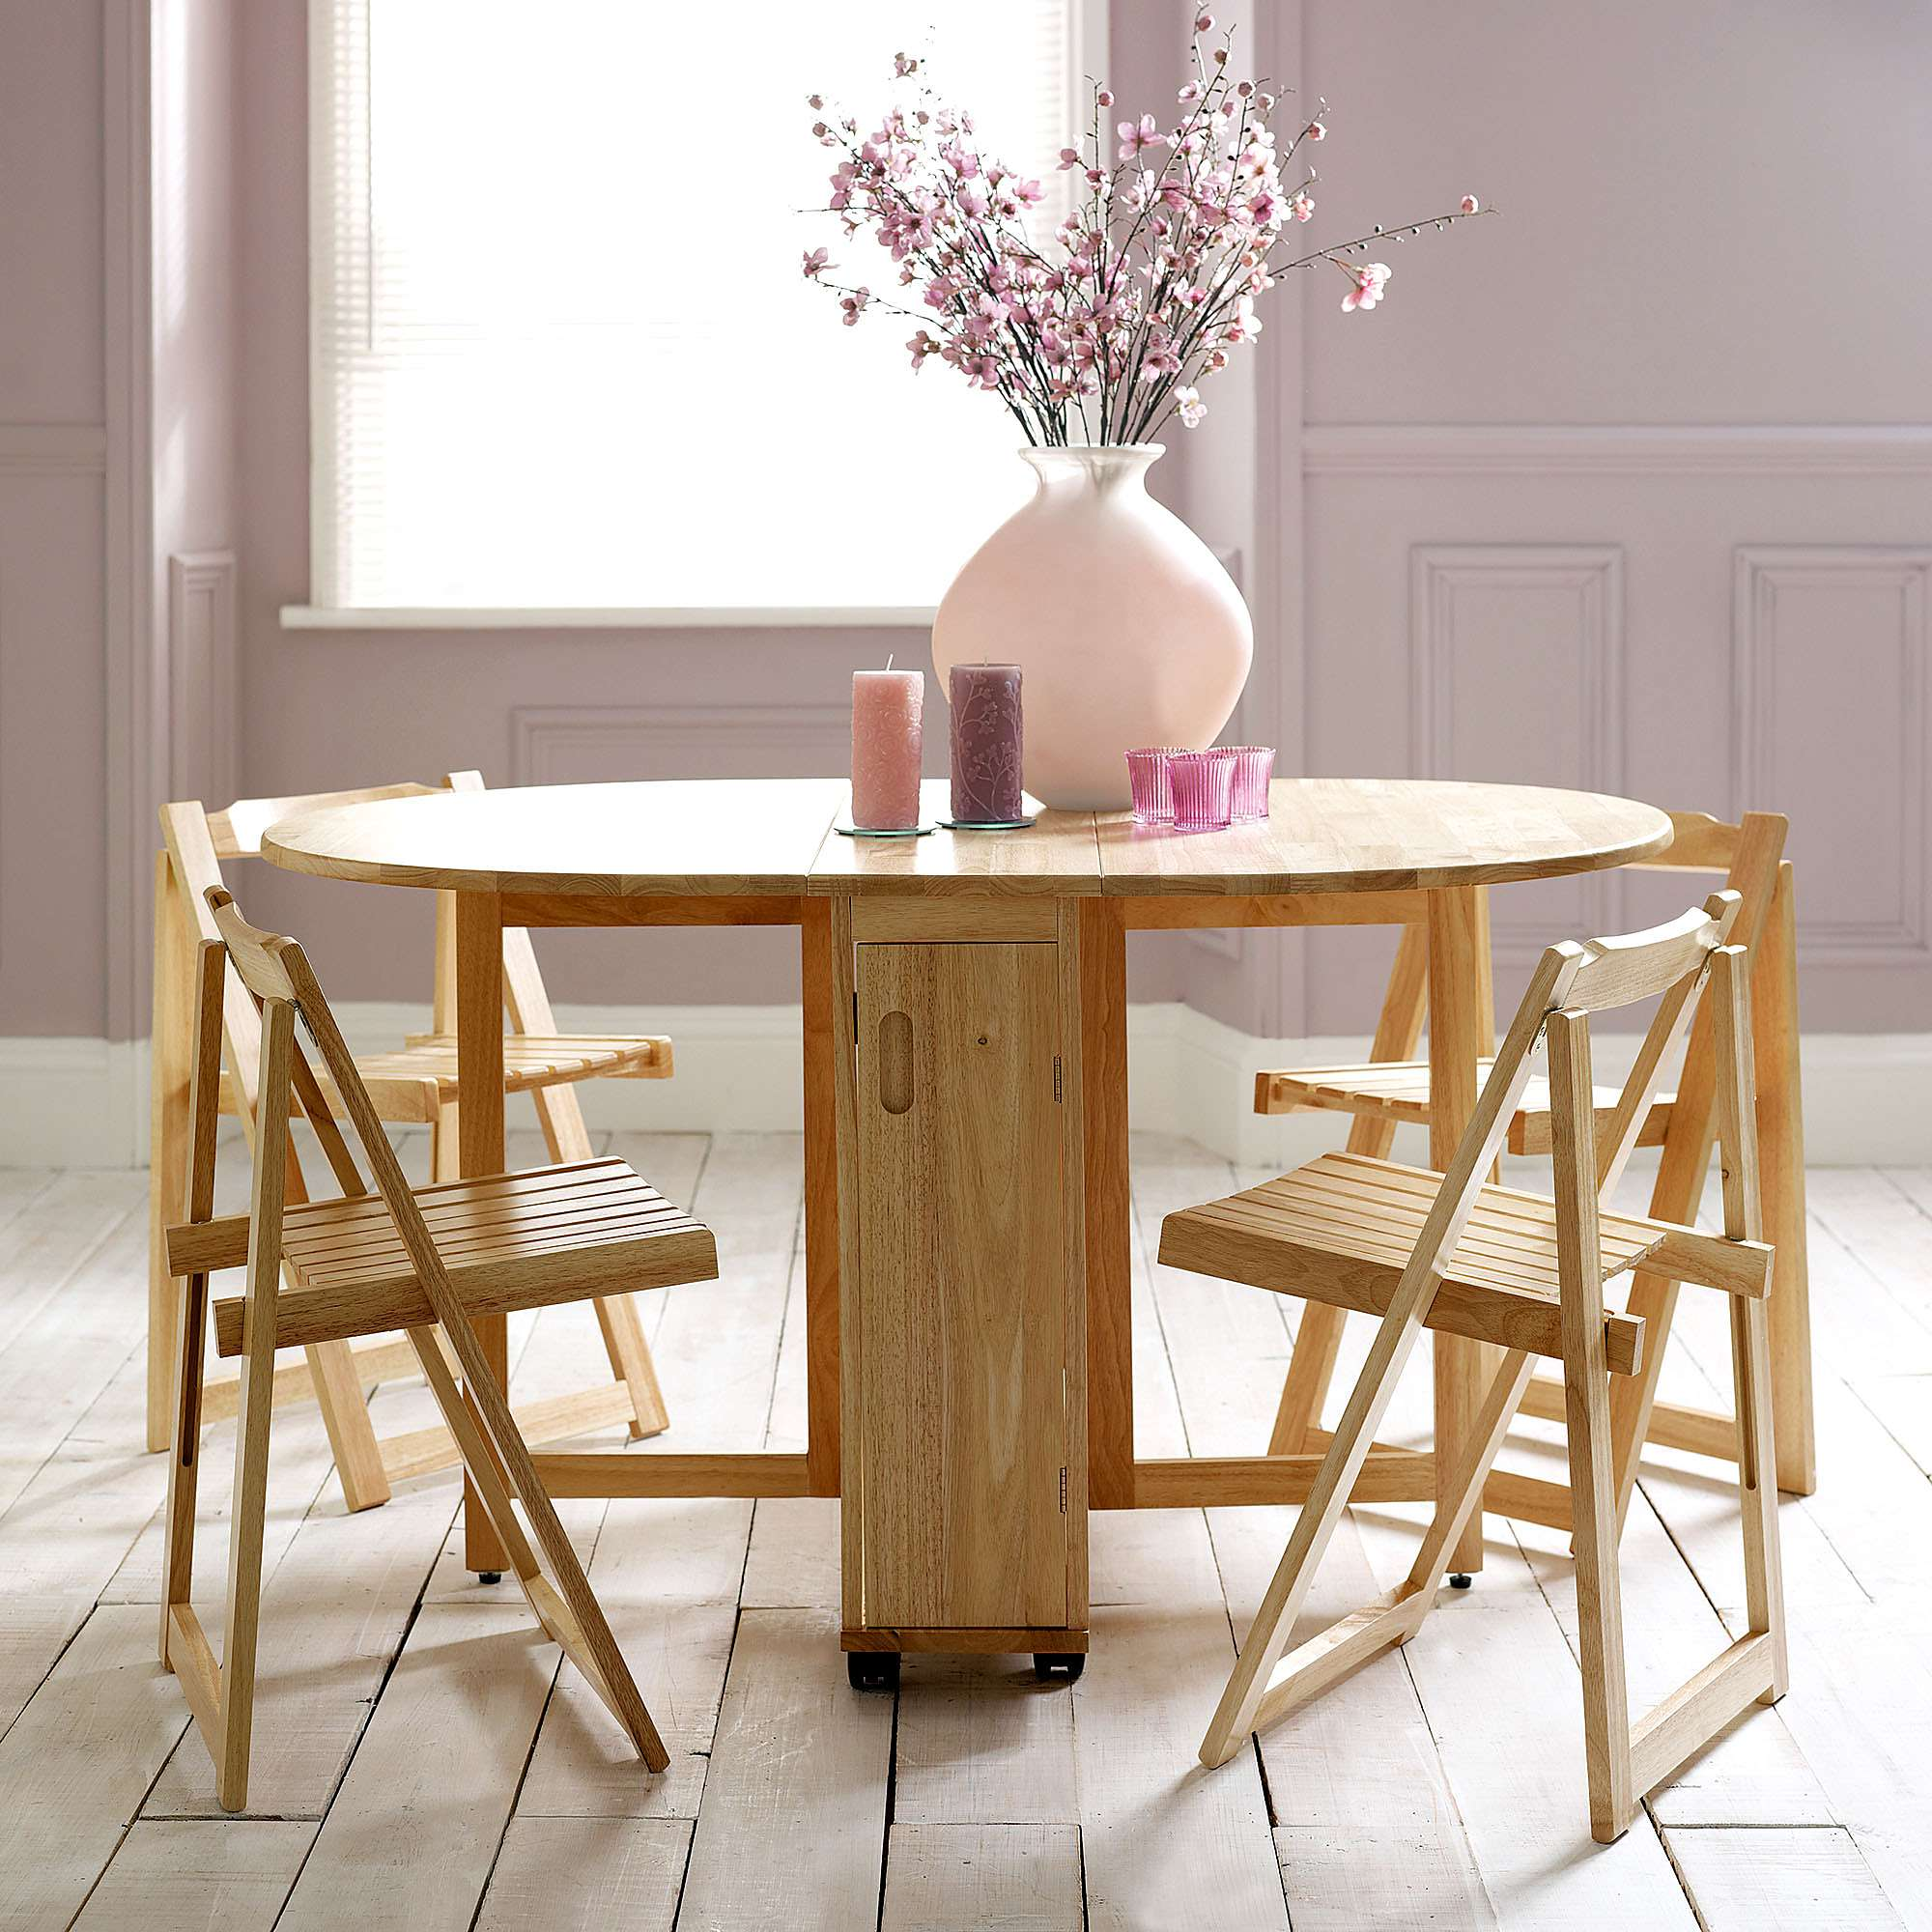 Choose a folding dining table for a small space adorable for The best dining tables